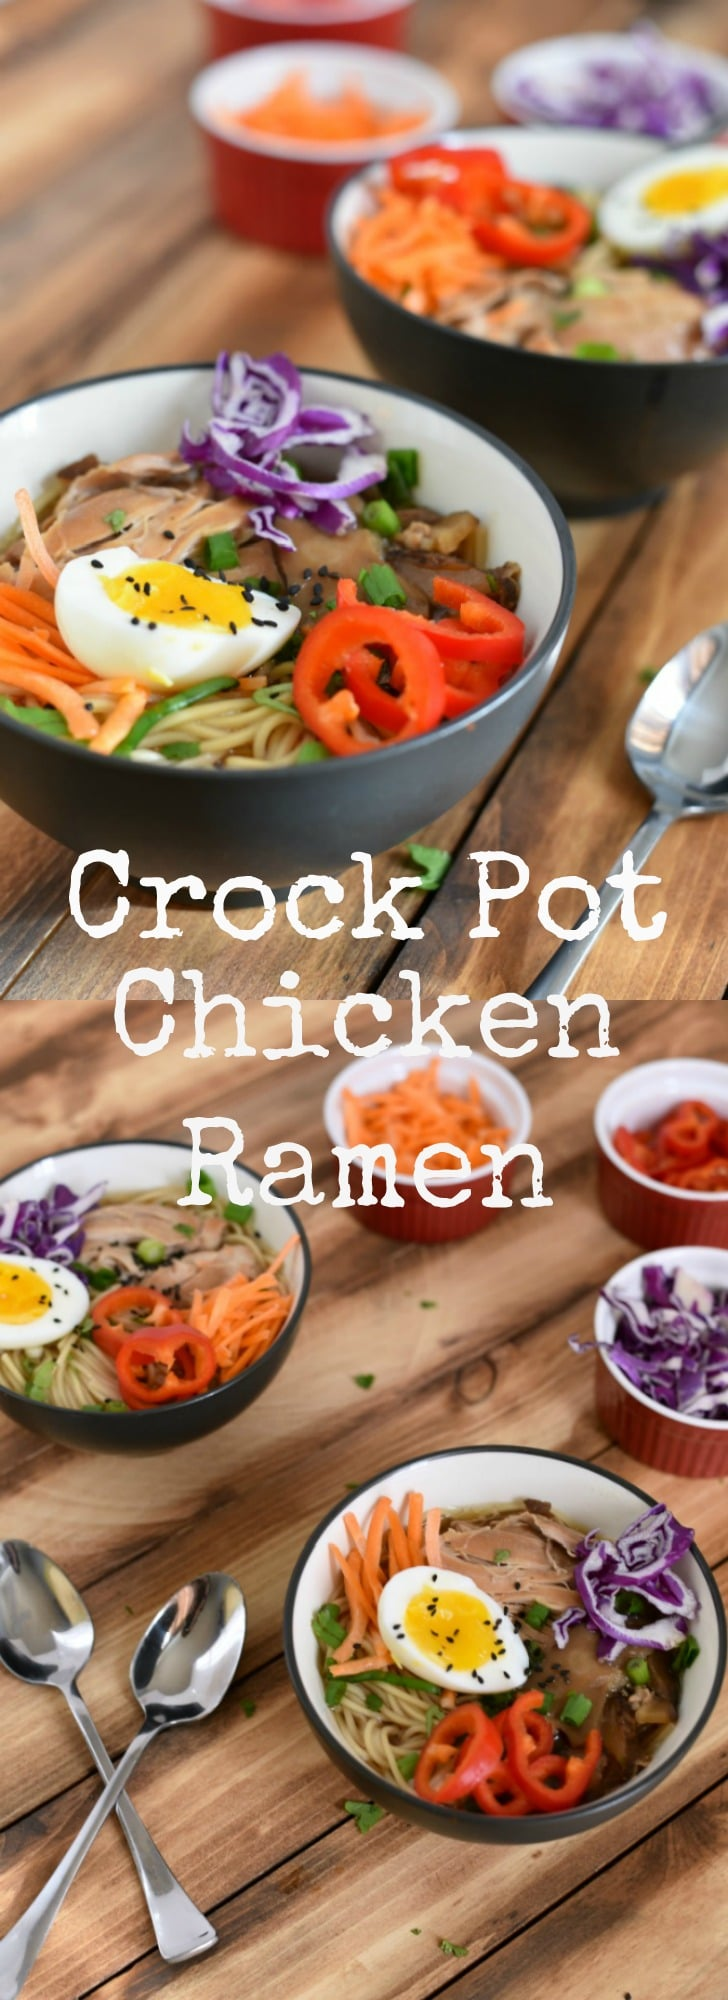 This easy and budget friendly slow cooker chicken ramen is perfect for busy nights! Packed with flavor, and a great way to get your family interested in trying new foods, too!